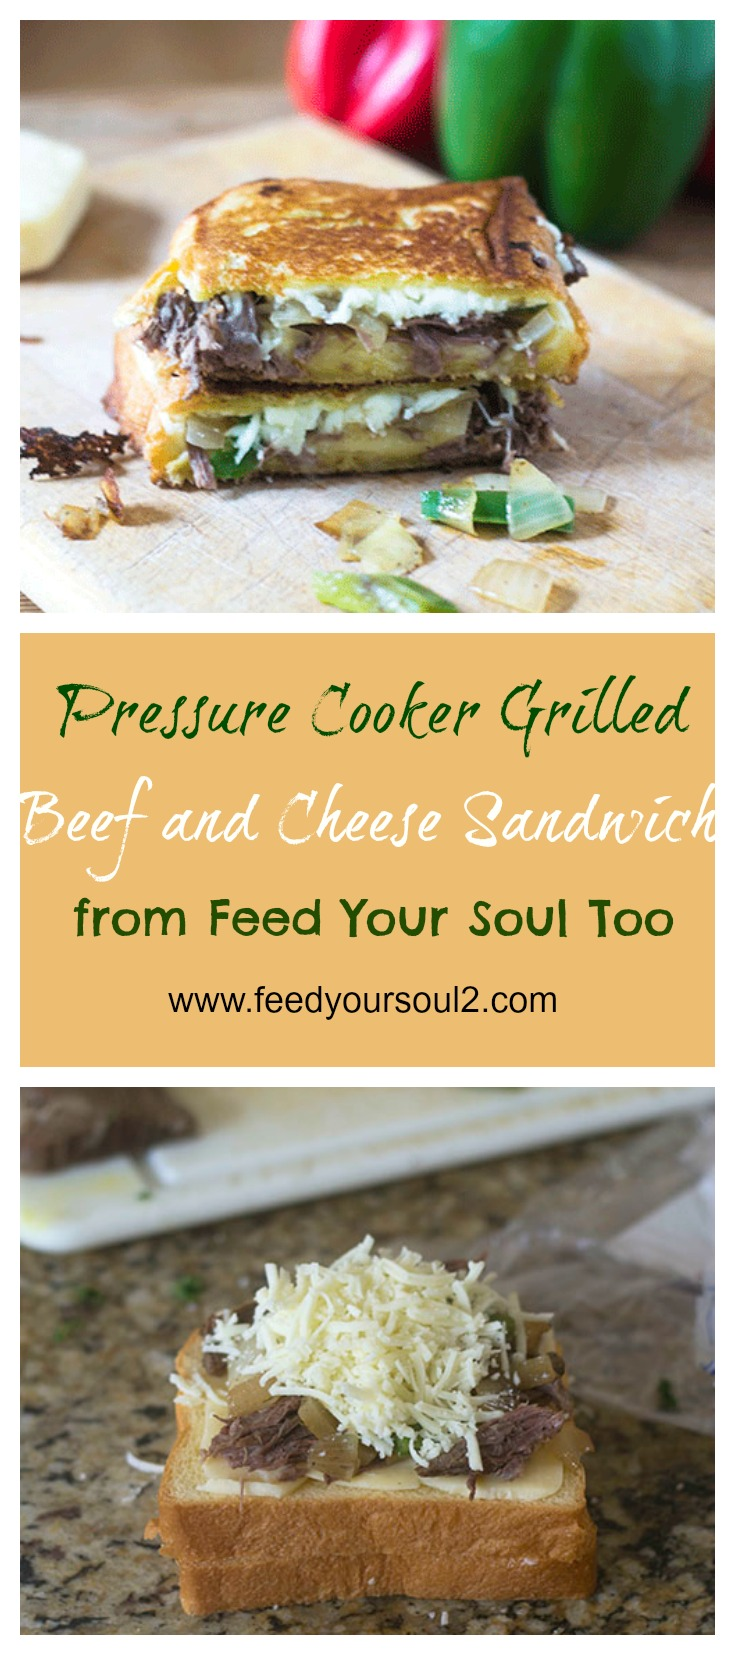 Pressure Cooker Grilled Beef & Cheese Sandwich #sandwich #grilledcheese #pressurecooker #beef | feedyoursoul2.com